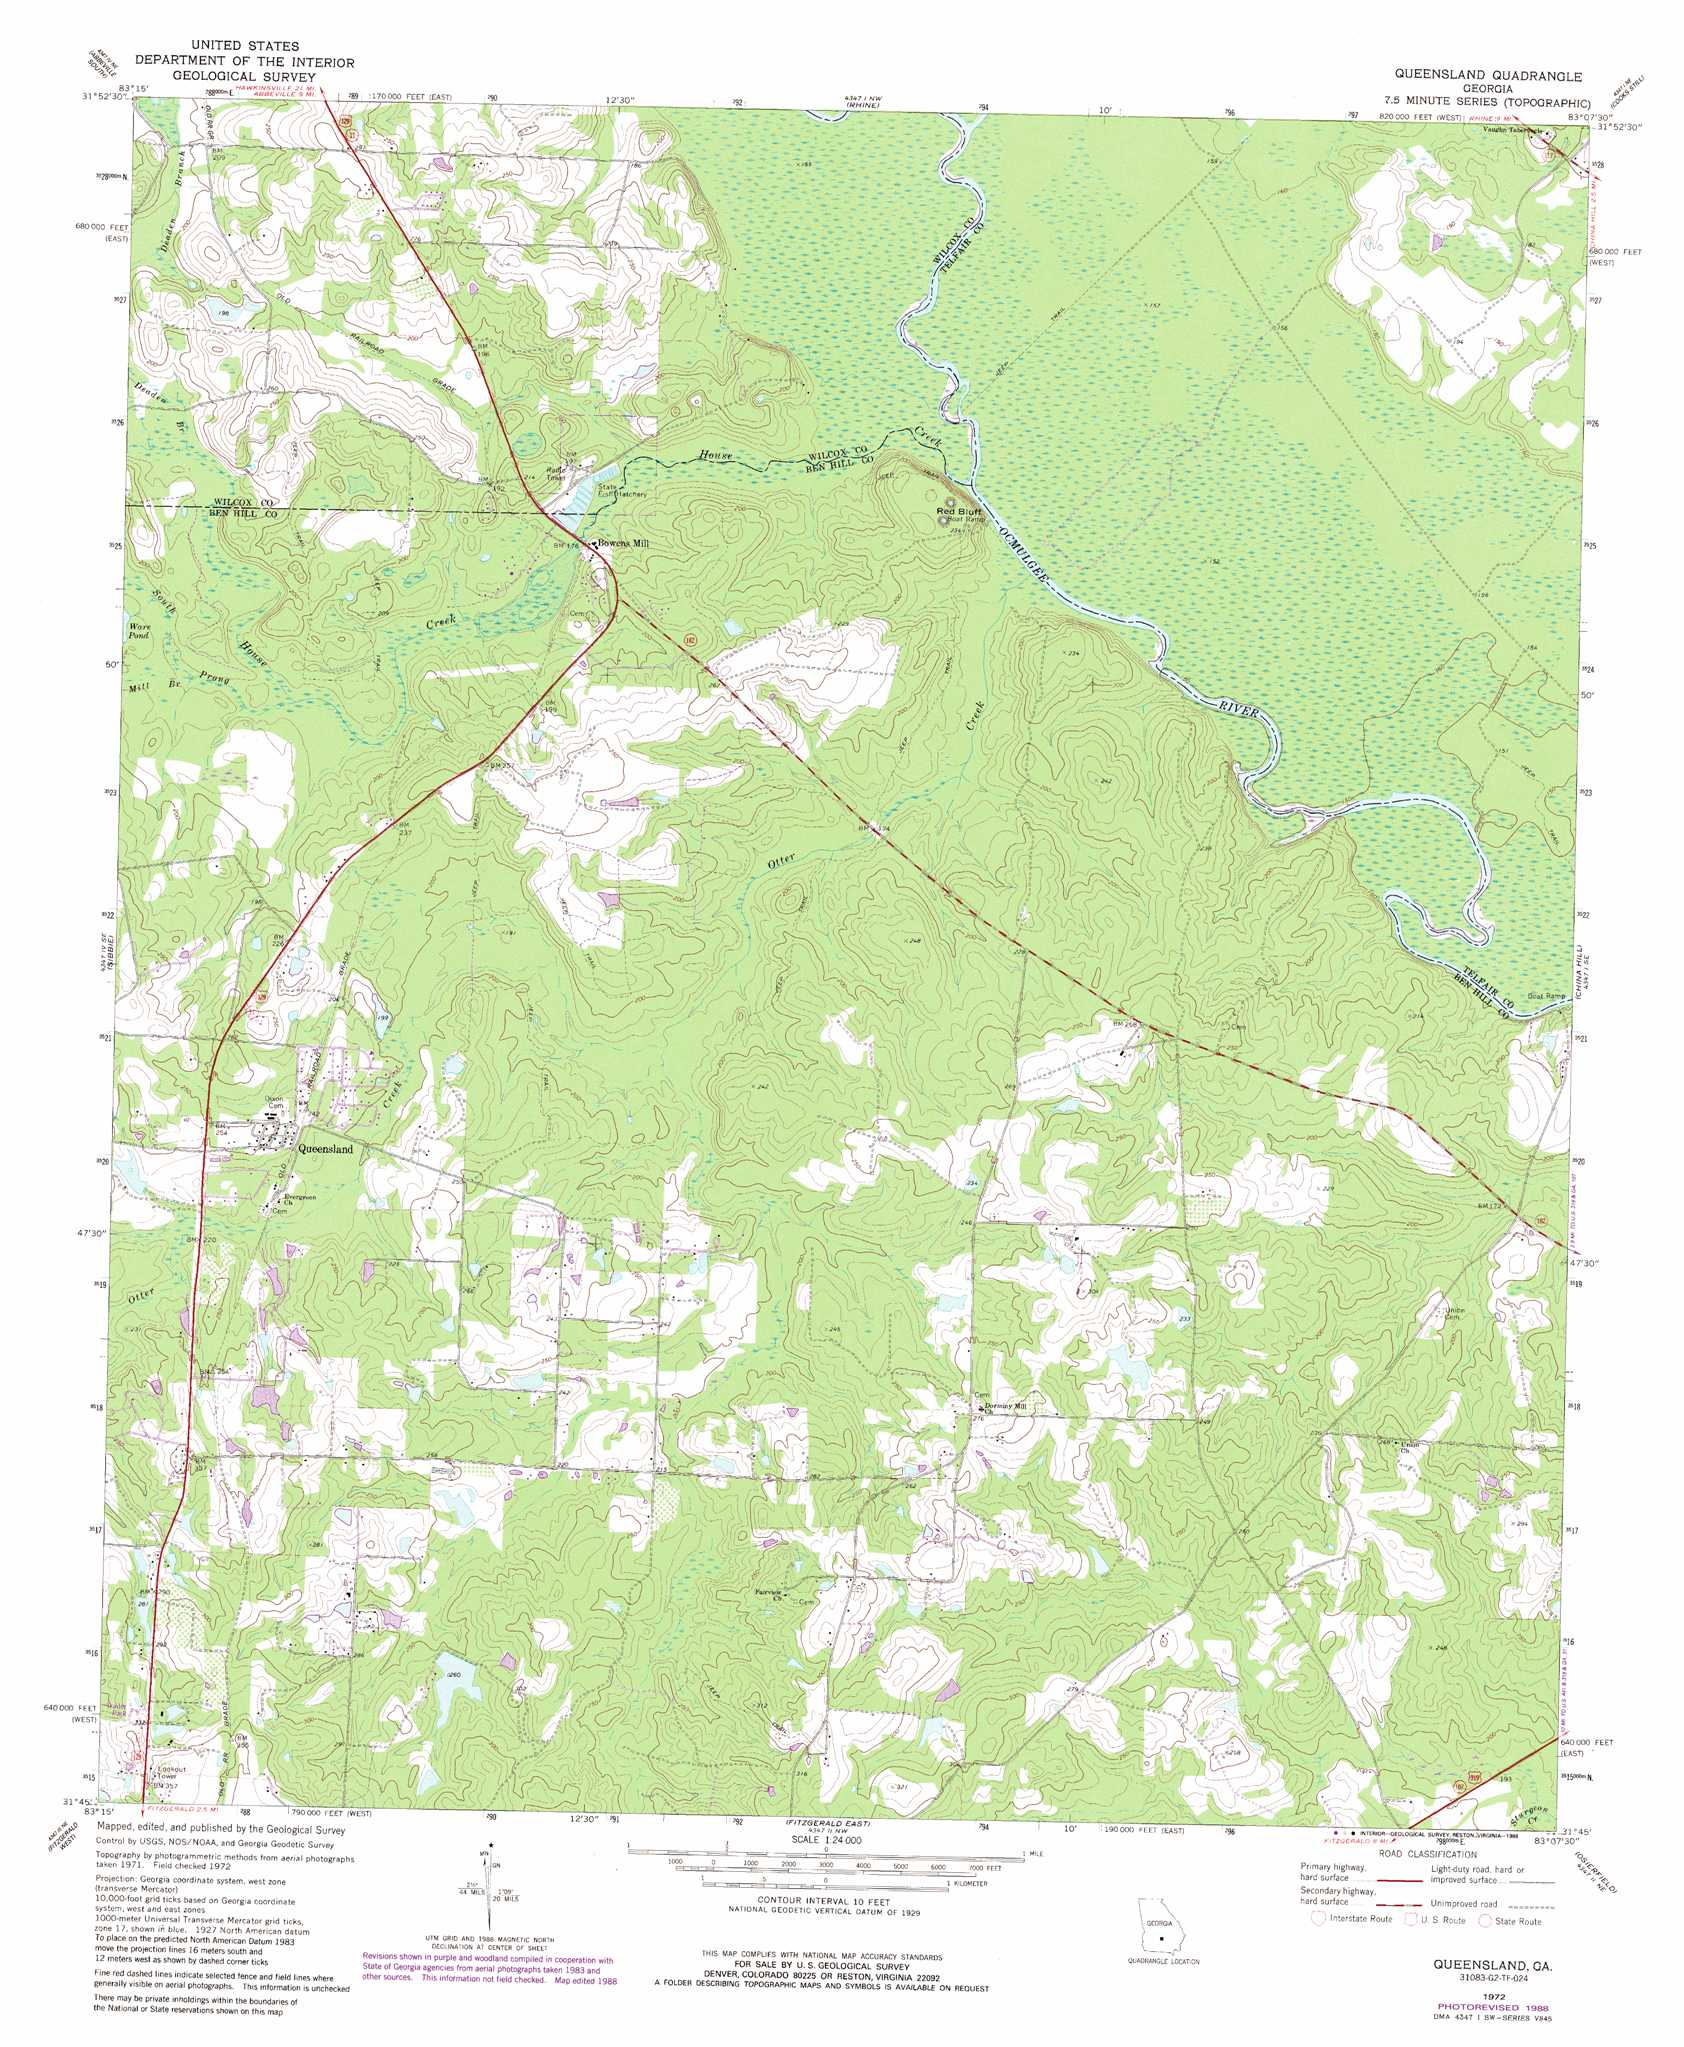 colorado topo maps with 31083g2 on Denver Colorado Aerial Photography Map further Classic Moab Trails furthermore California also Maps additionally South Carolina.